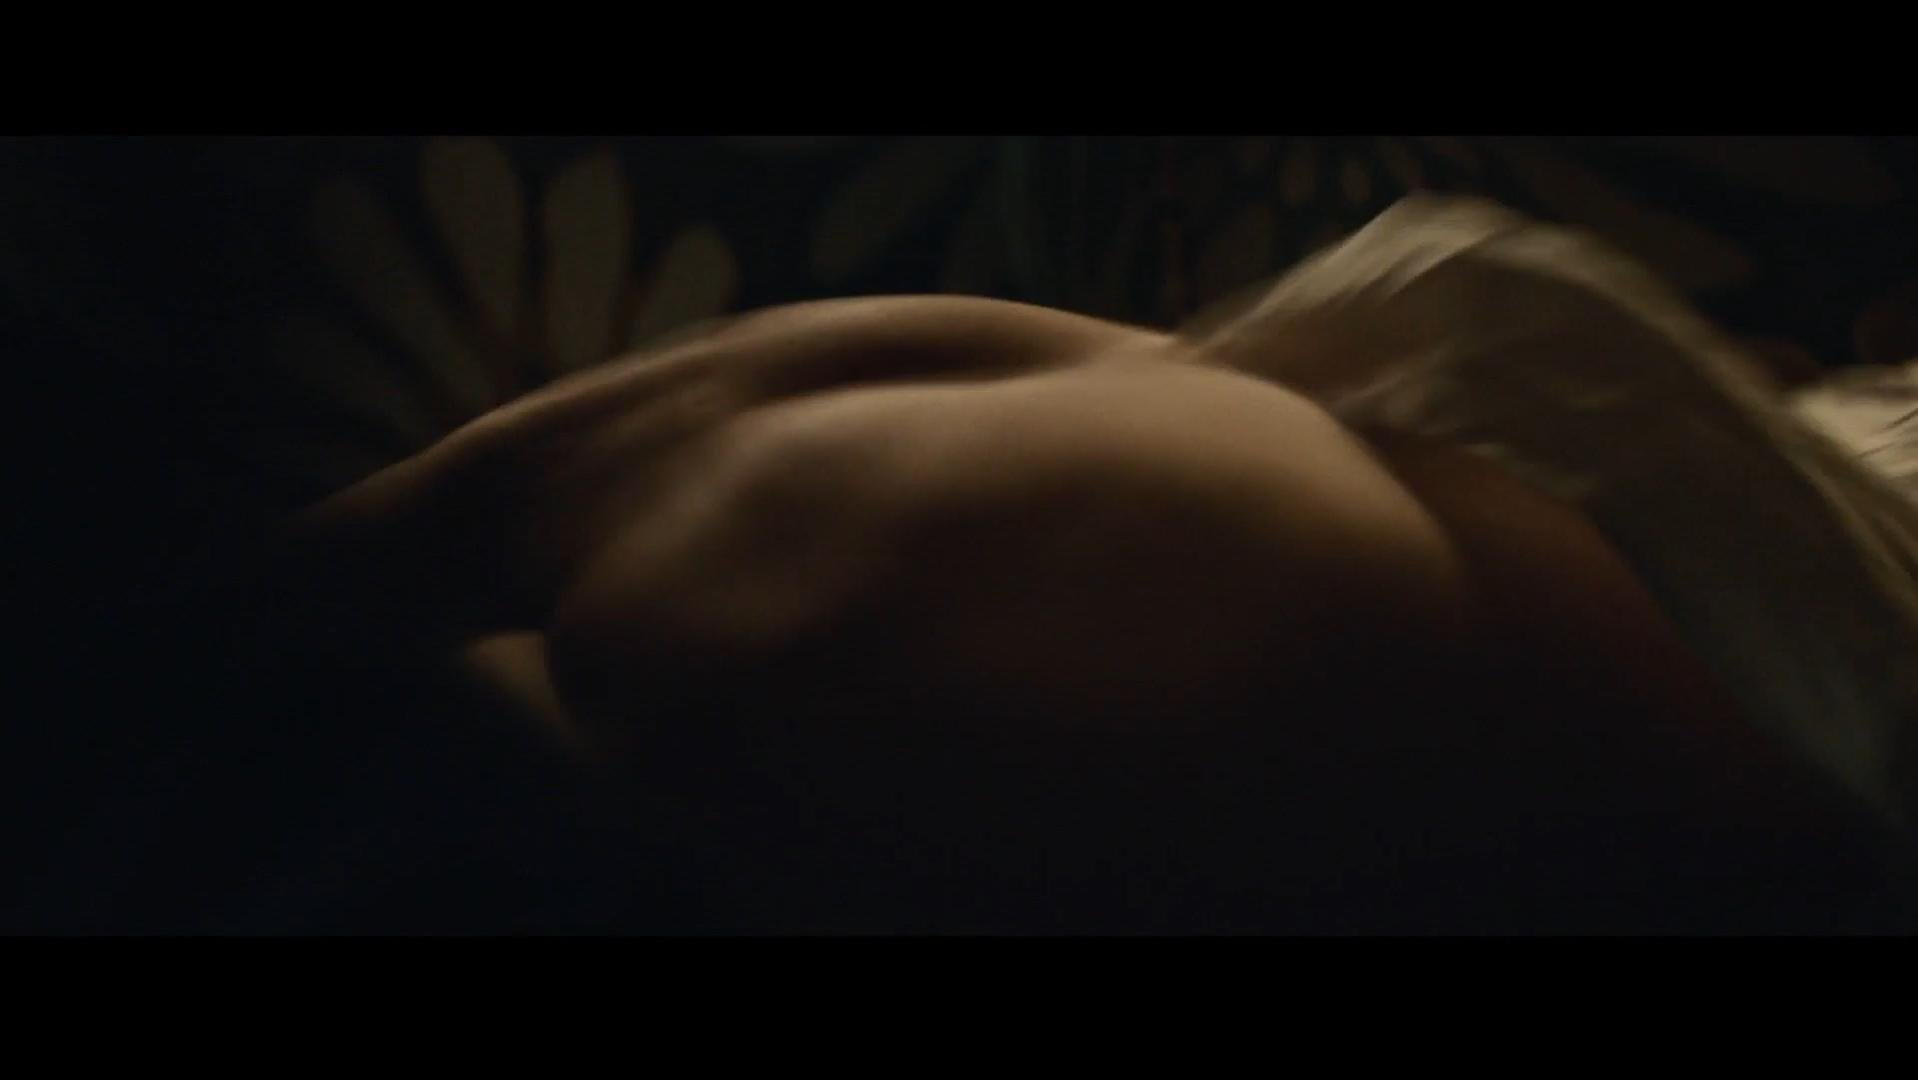 Emily Browning nude - American Gods s01e02-04 (2017)